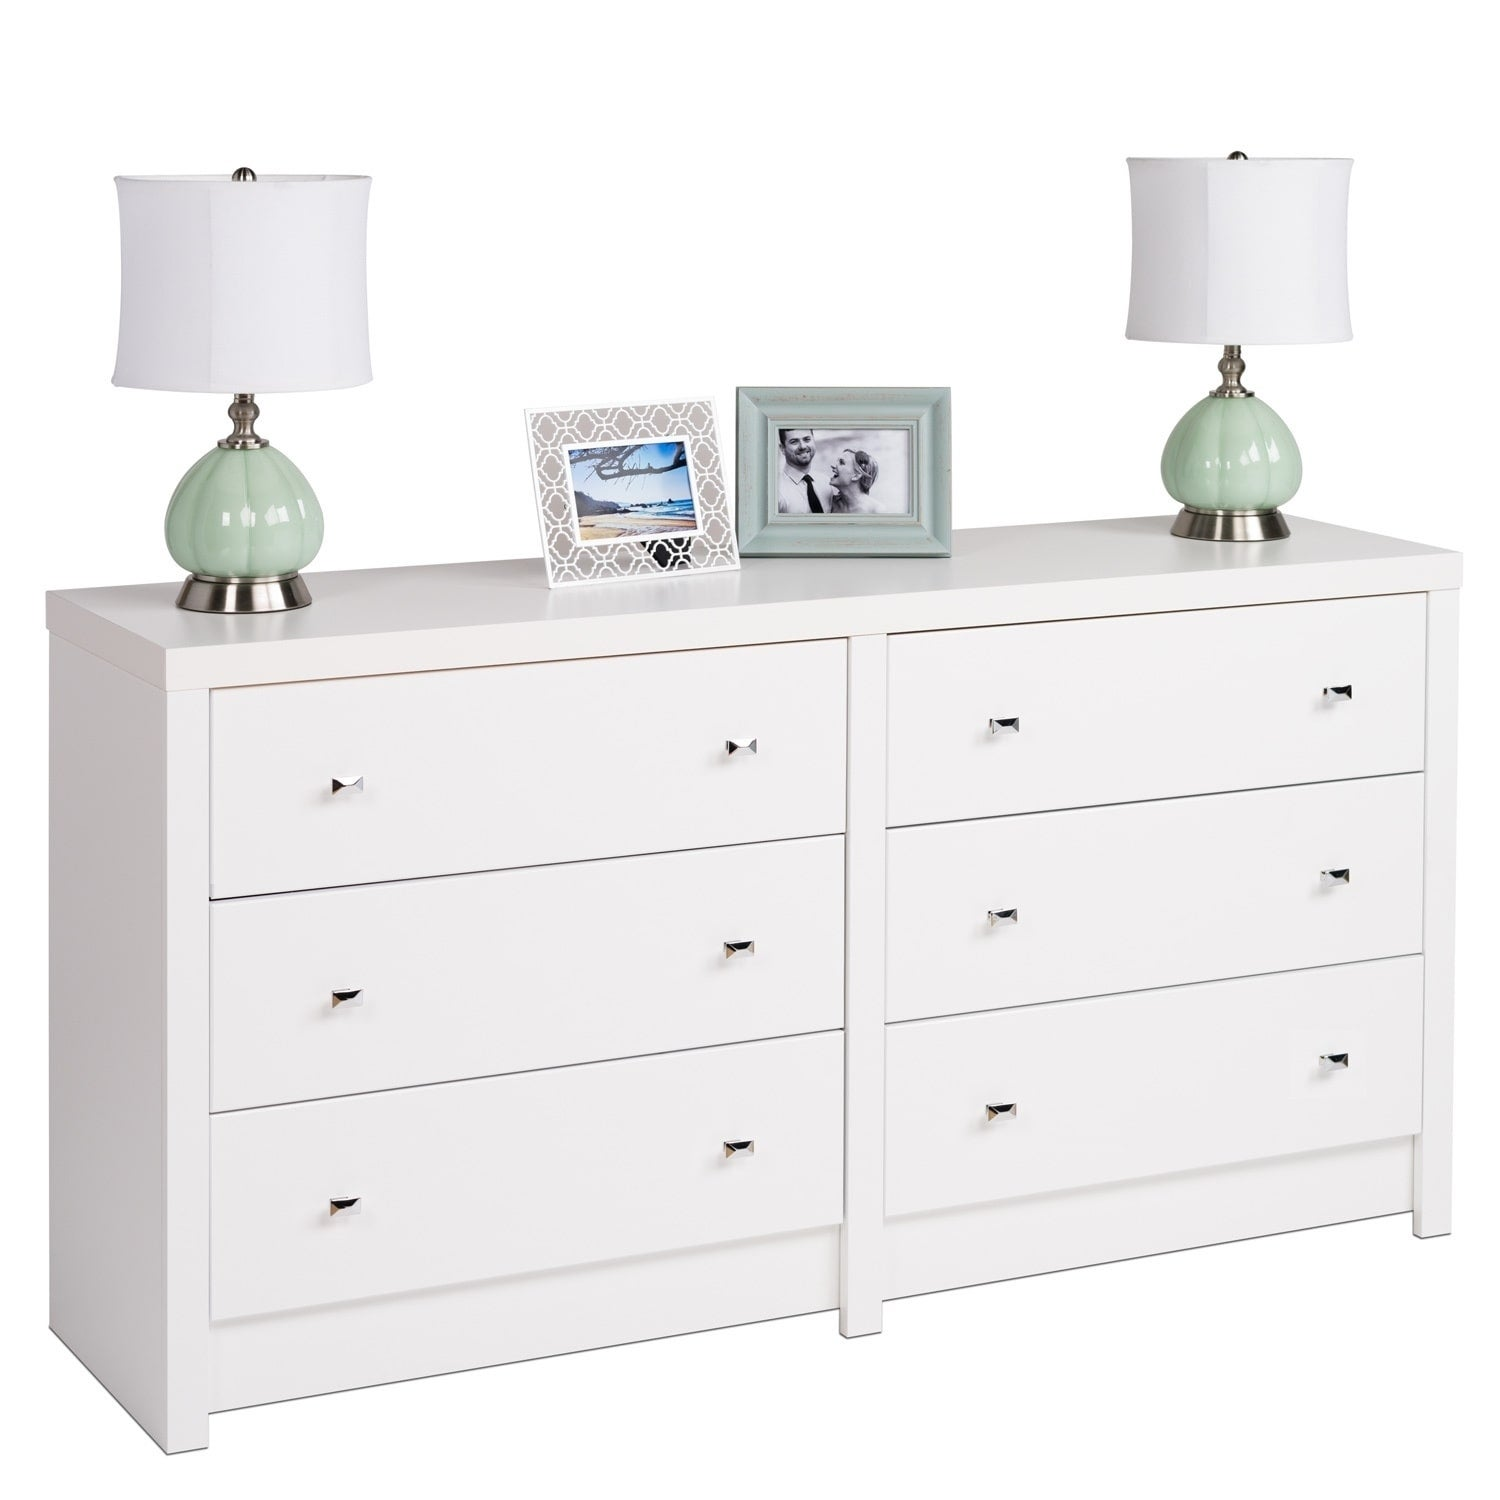 the latest 7dc02 50ad6 Buy Dressers & Chests Online at Overstock | Our Best Bedroom ...